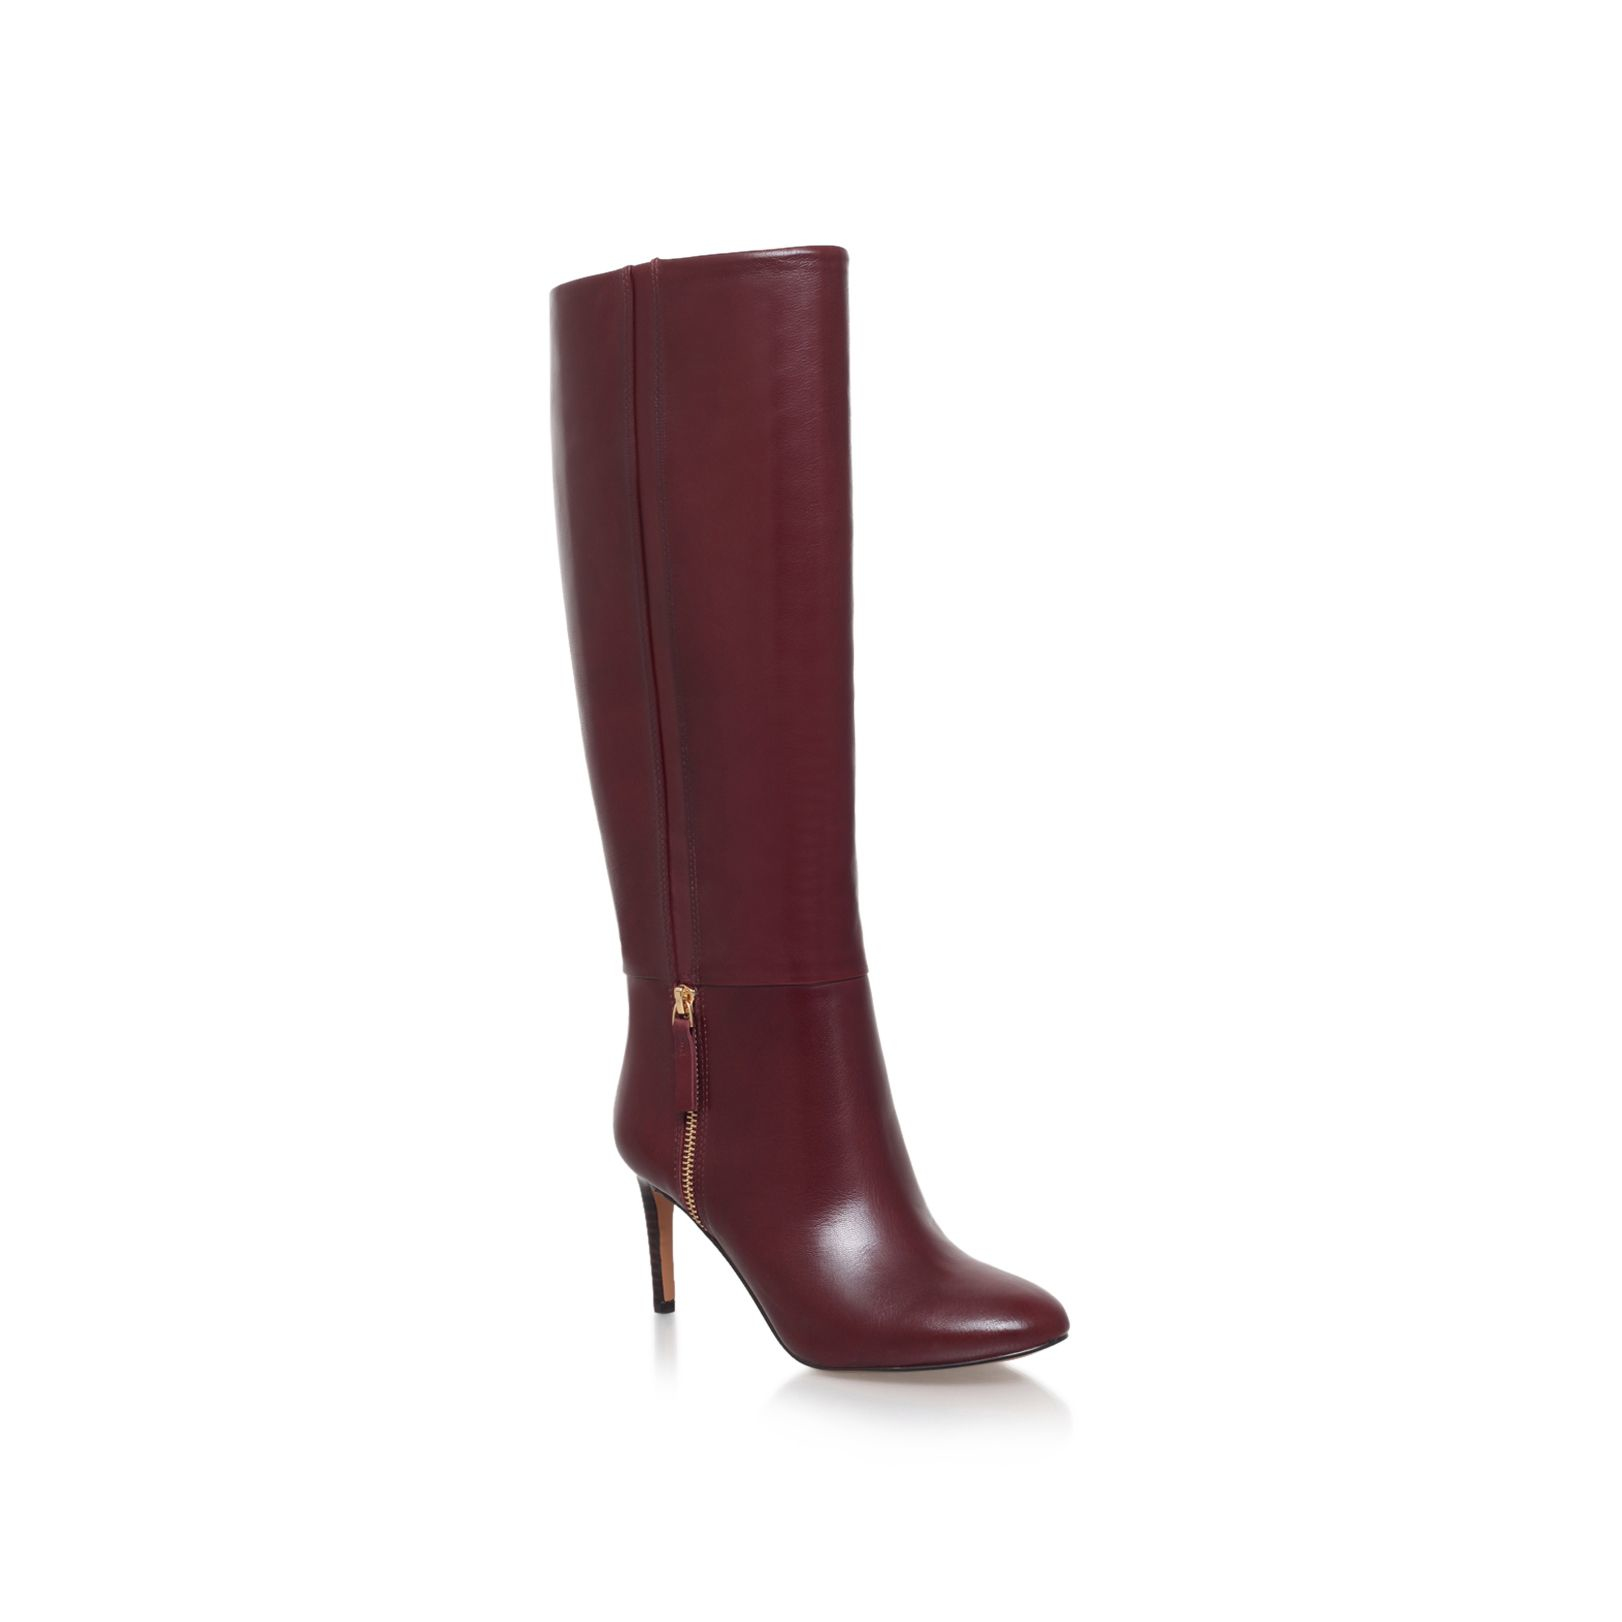 nine west vintage high heel knee high boots in lyst